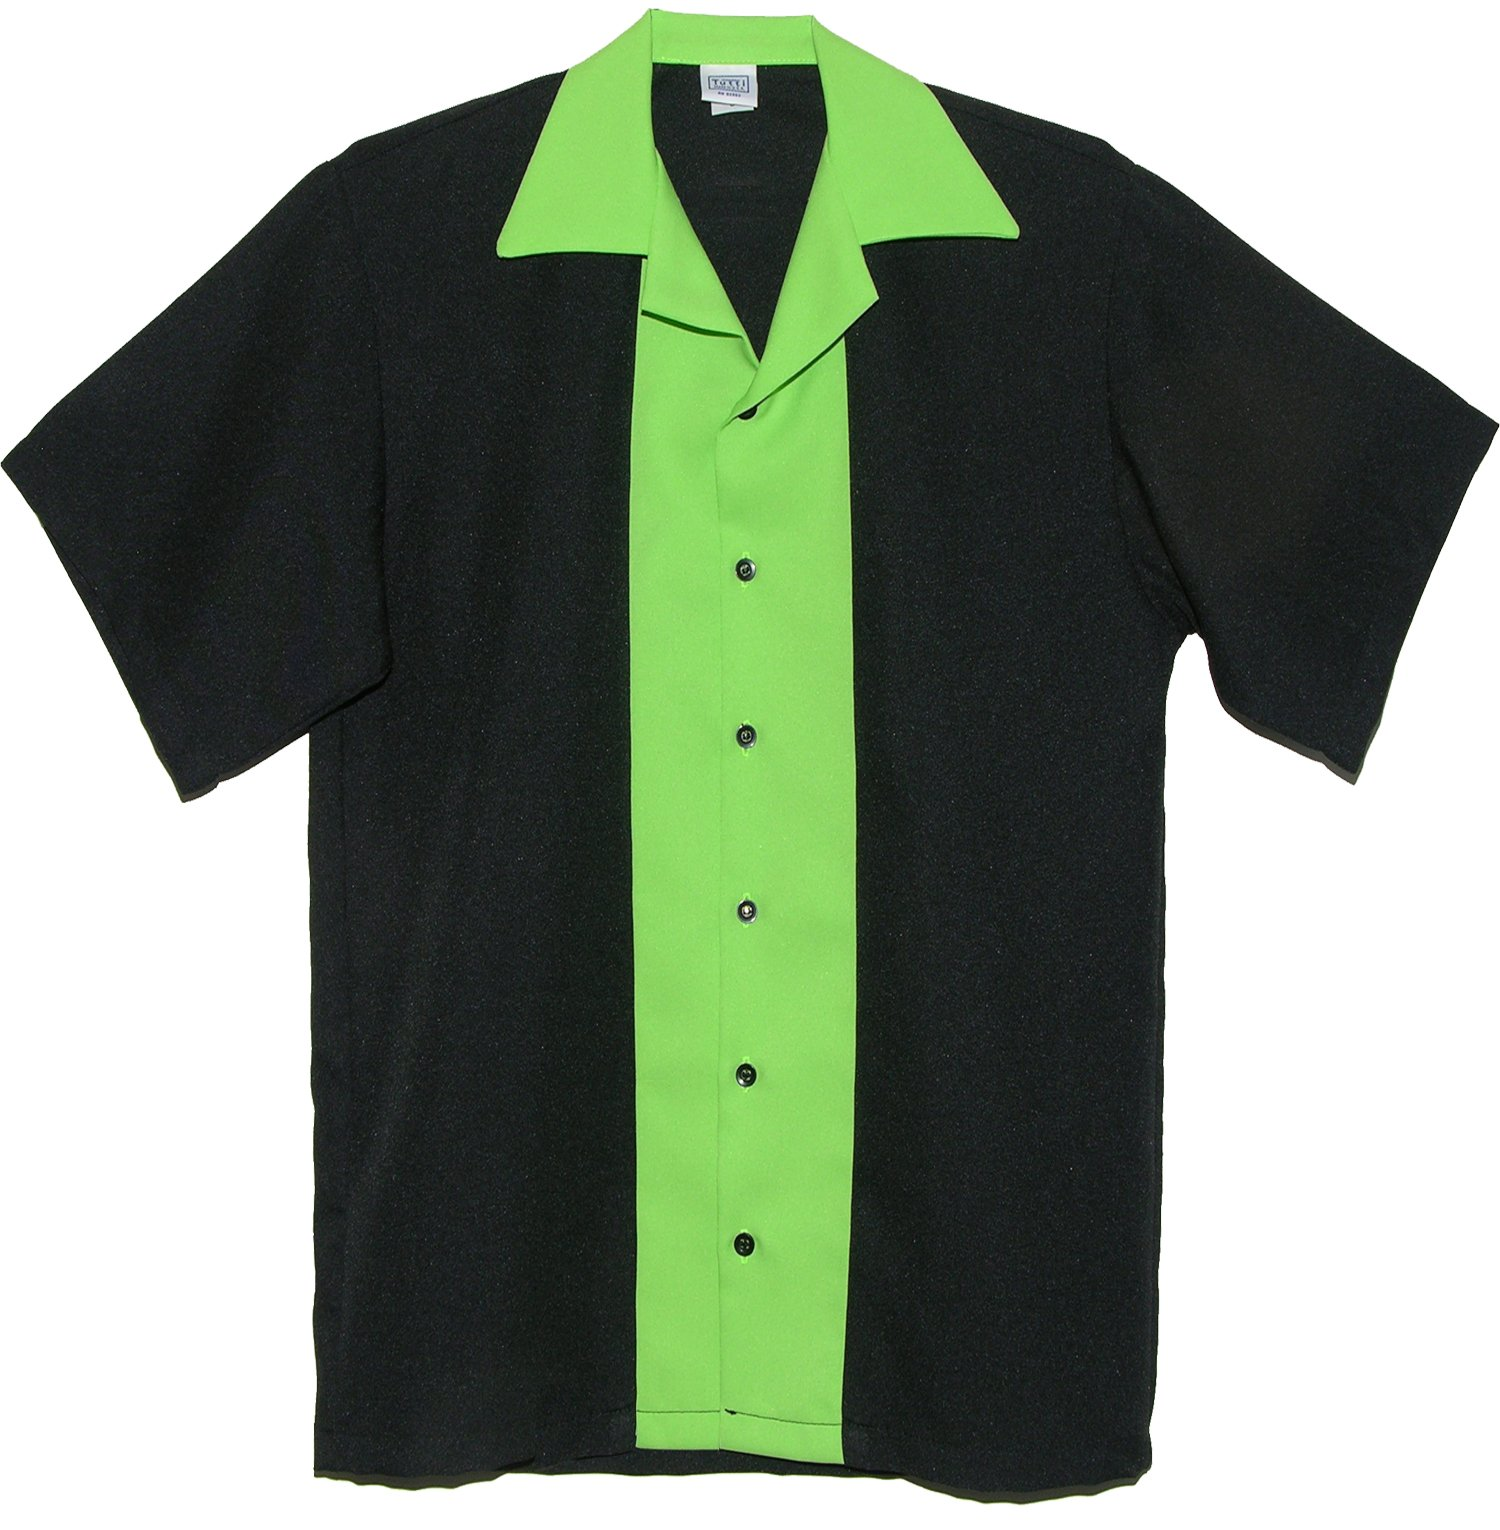 Tutti Mens Bowling Shirts (Small) Lime Green by Tutti